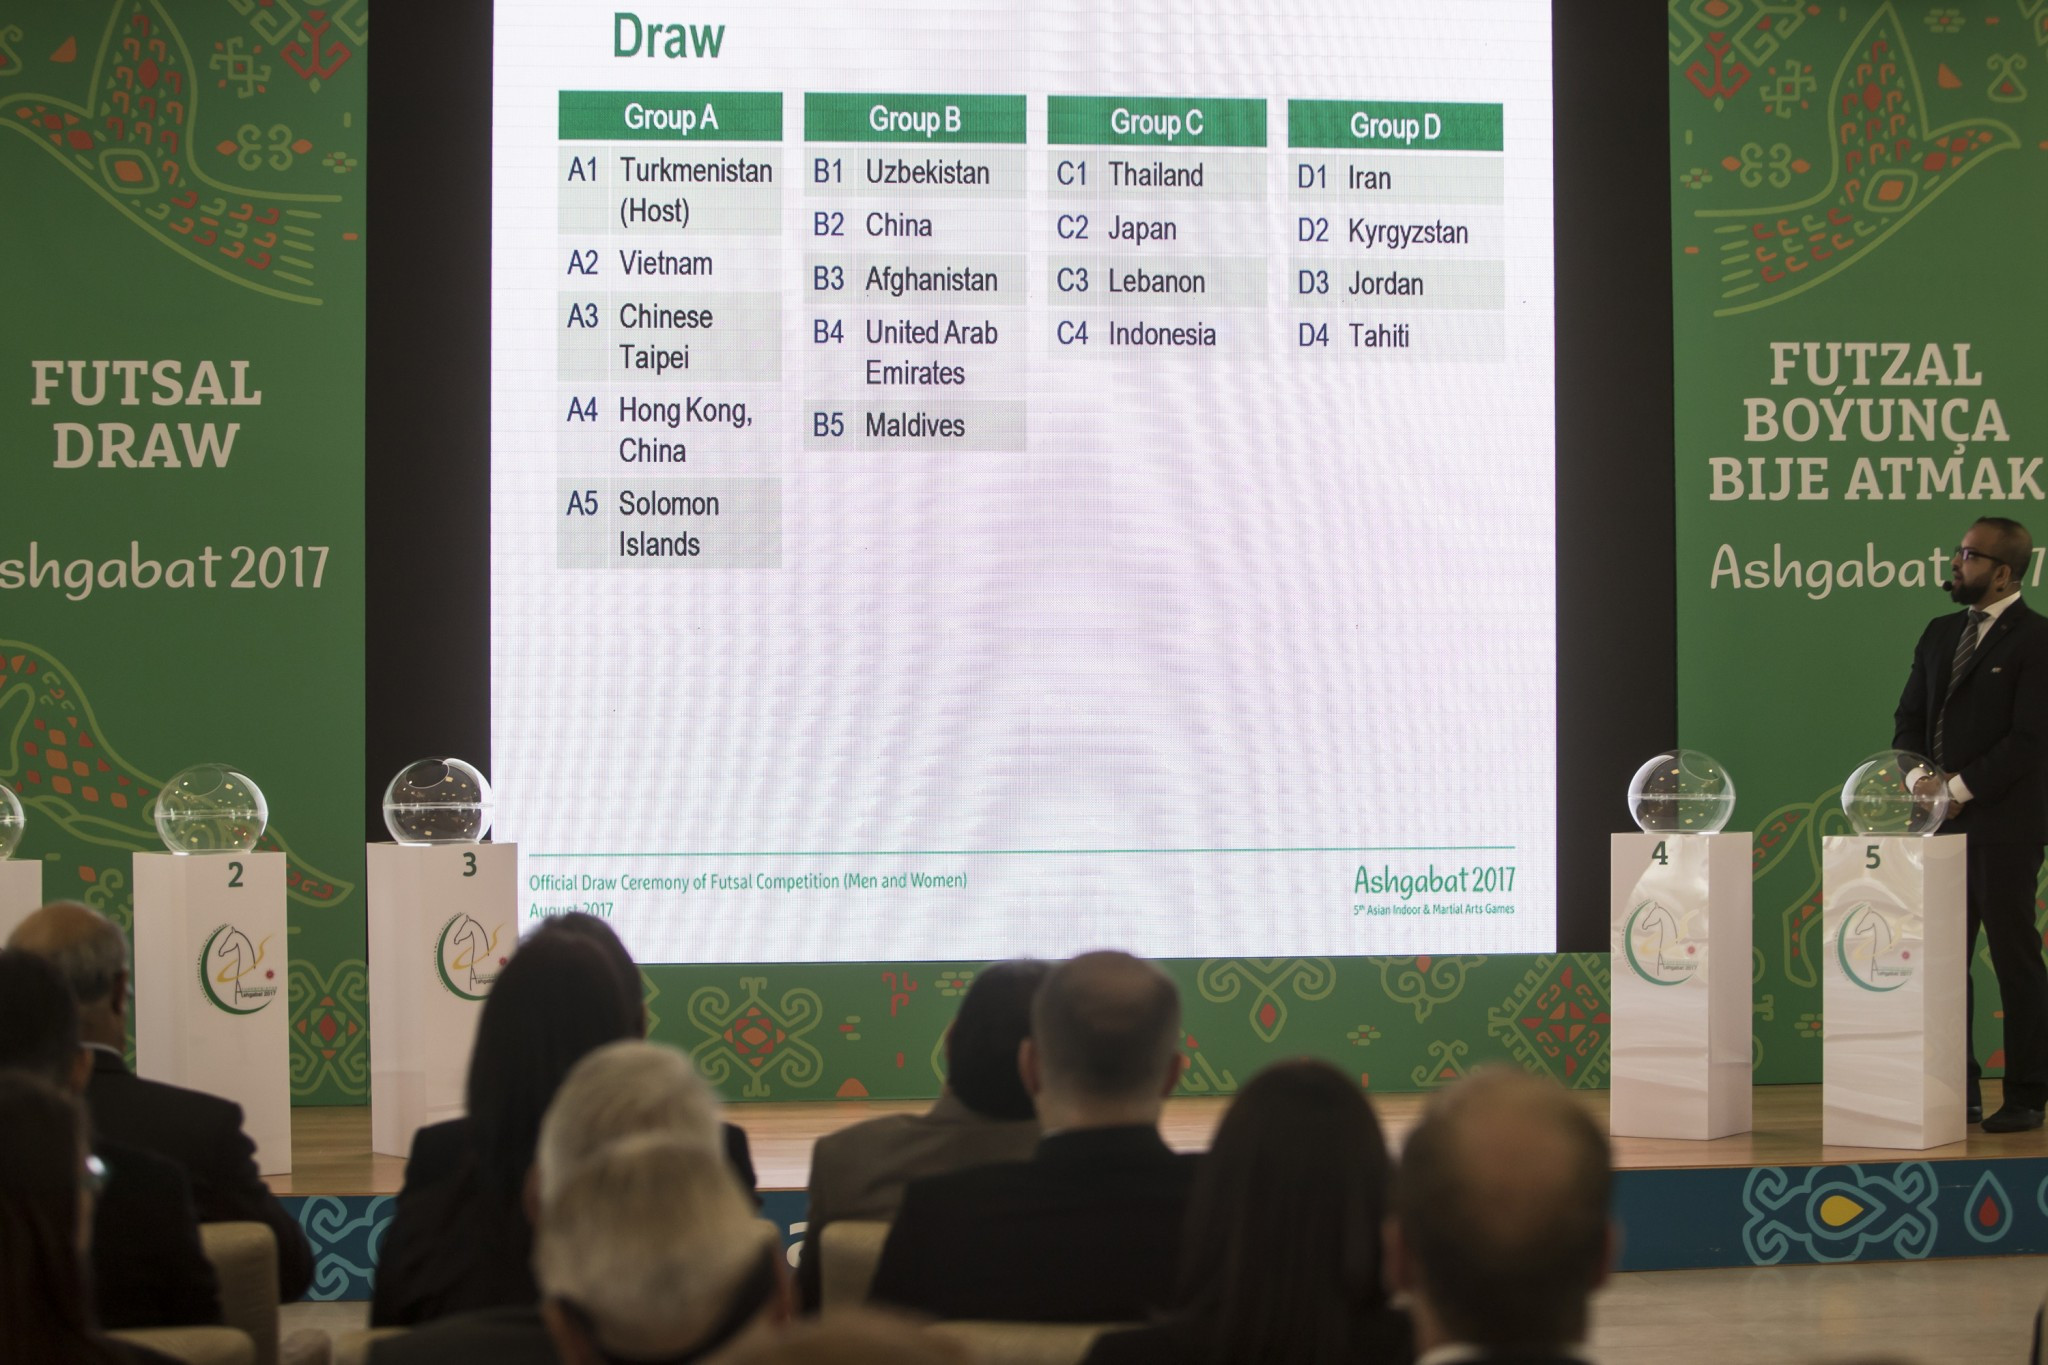 Organisers have conducted the draw for the futsal tournament ©Ashgabat 2017